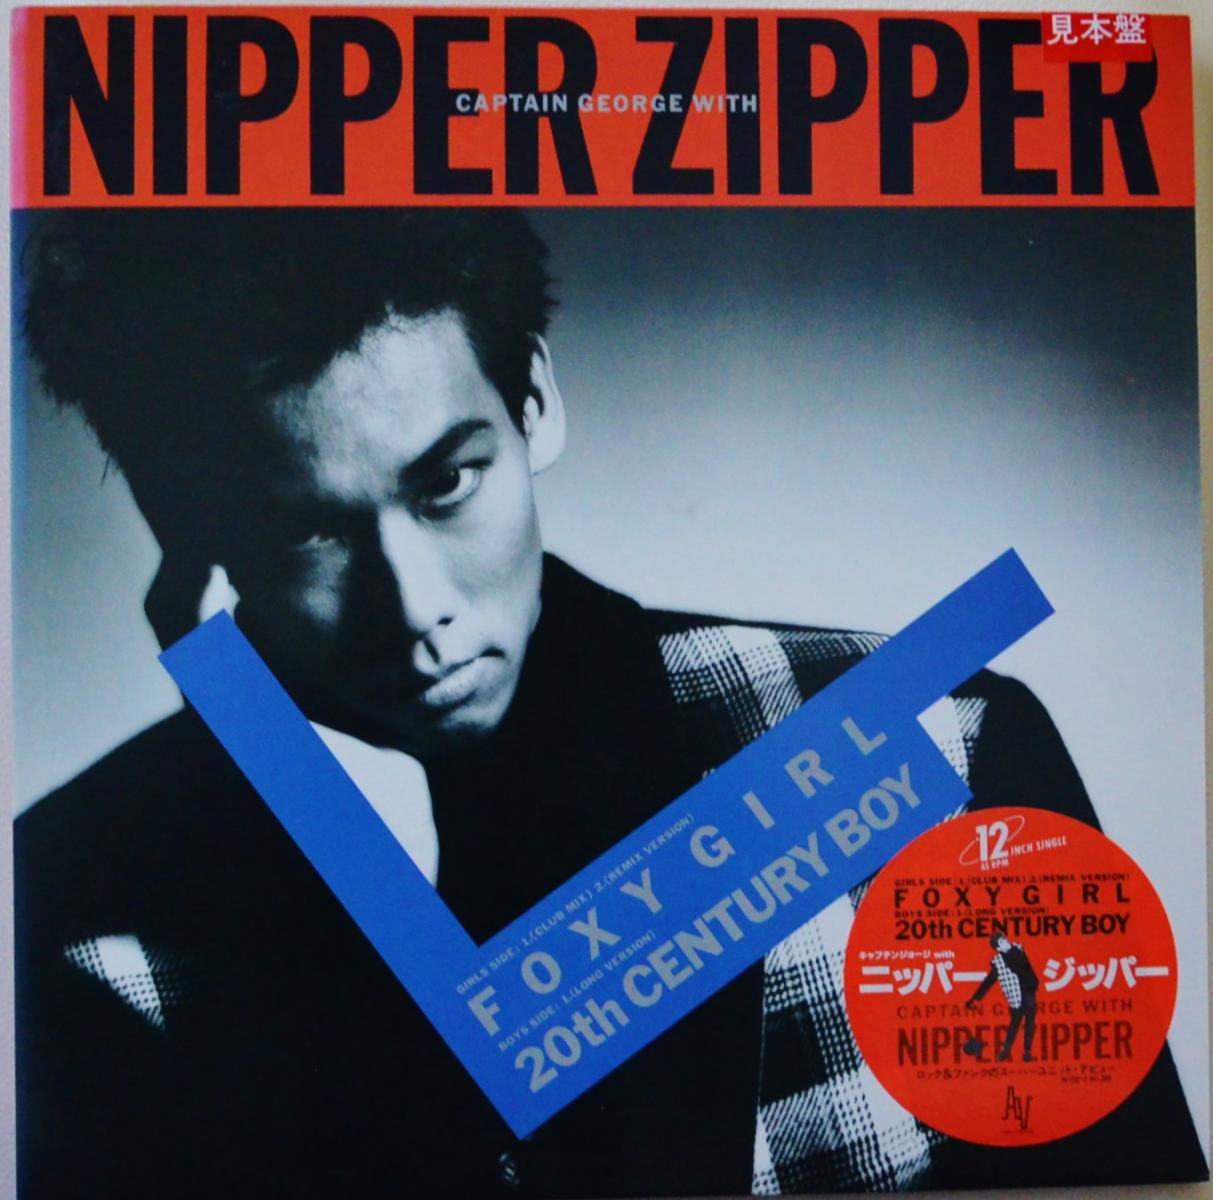 キャプテン・ジョージ WITH ニッパー・ジッパー CAPTAIN GEORGE WITH NIPPER ZIPPER / FOXY GIRL / 20TH CENTURY BOY (12